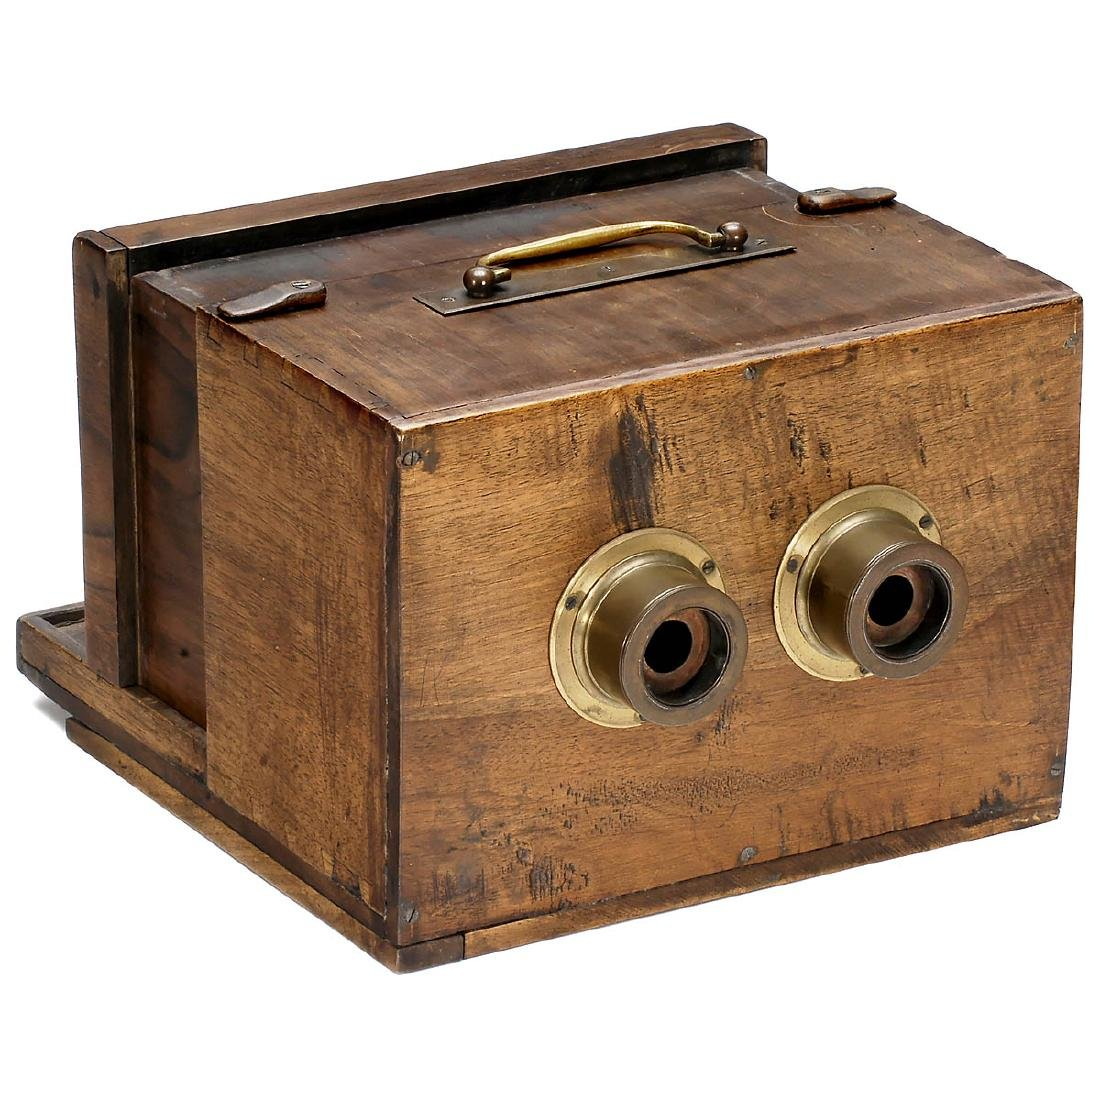 French Stereo Wet-Plate Sliding Box Camera with early